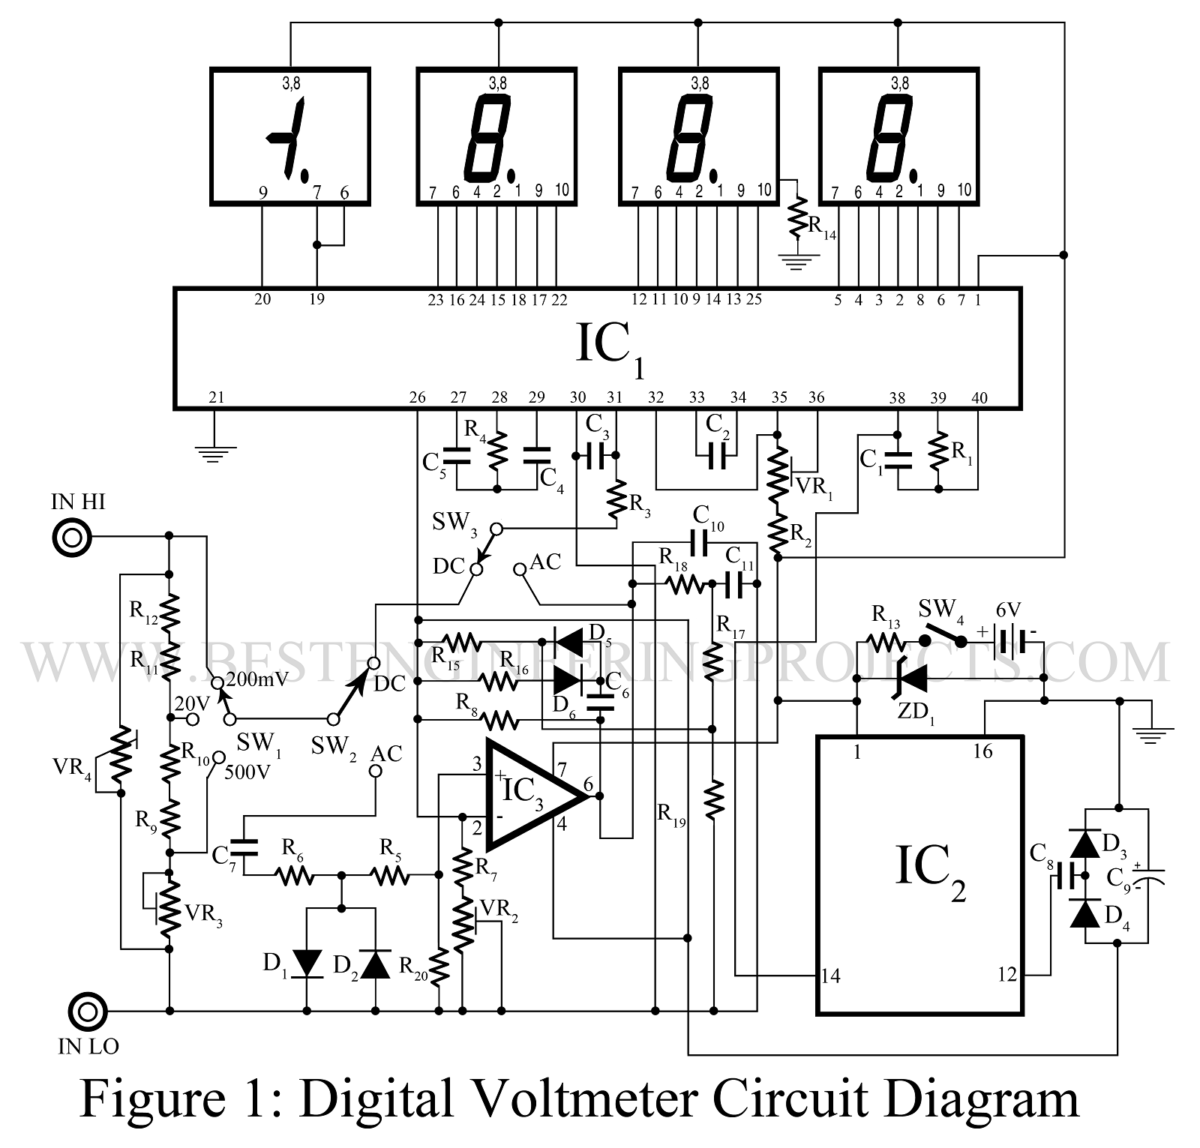 digital voltmeter  dvm  circuit using icl-7107